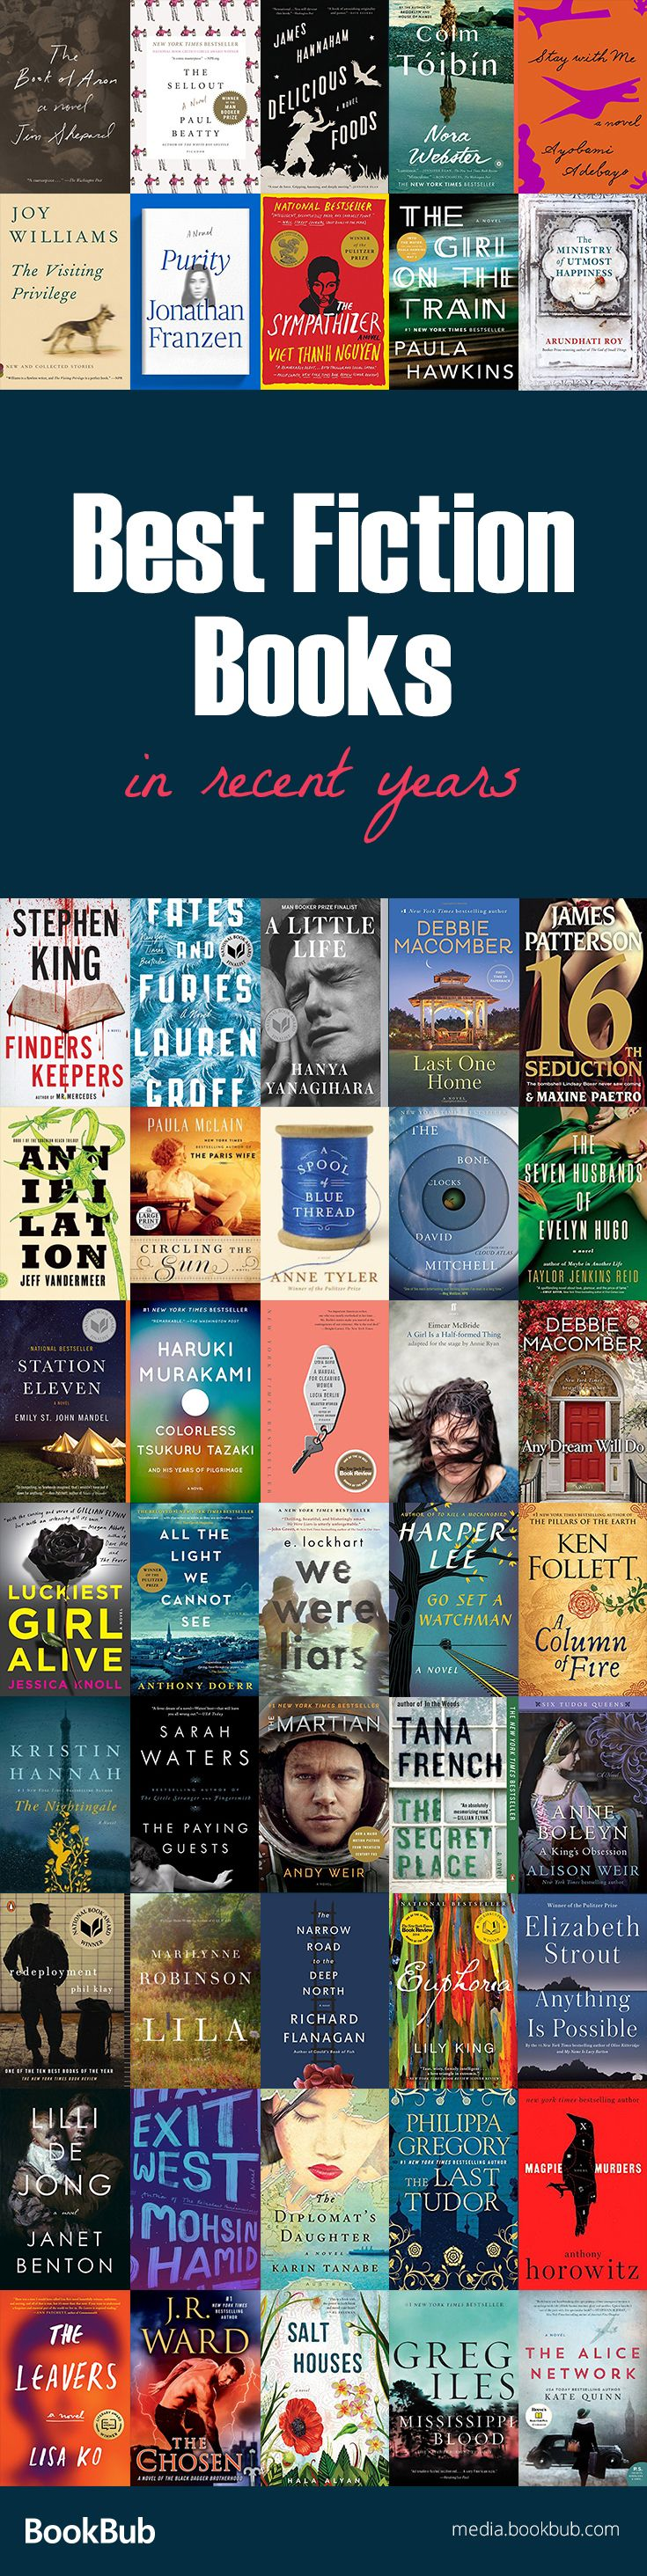 Check out our list of the best fiction books to read, including bestselling books from recent years. This list is great for women, young adults, and more, and includes many modern classics.